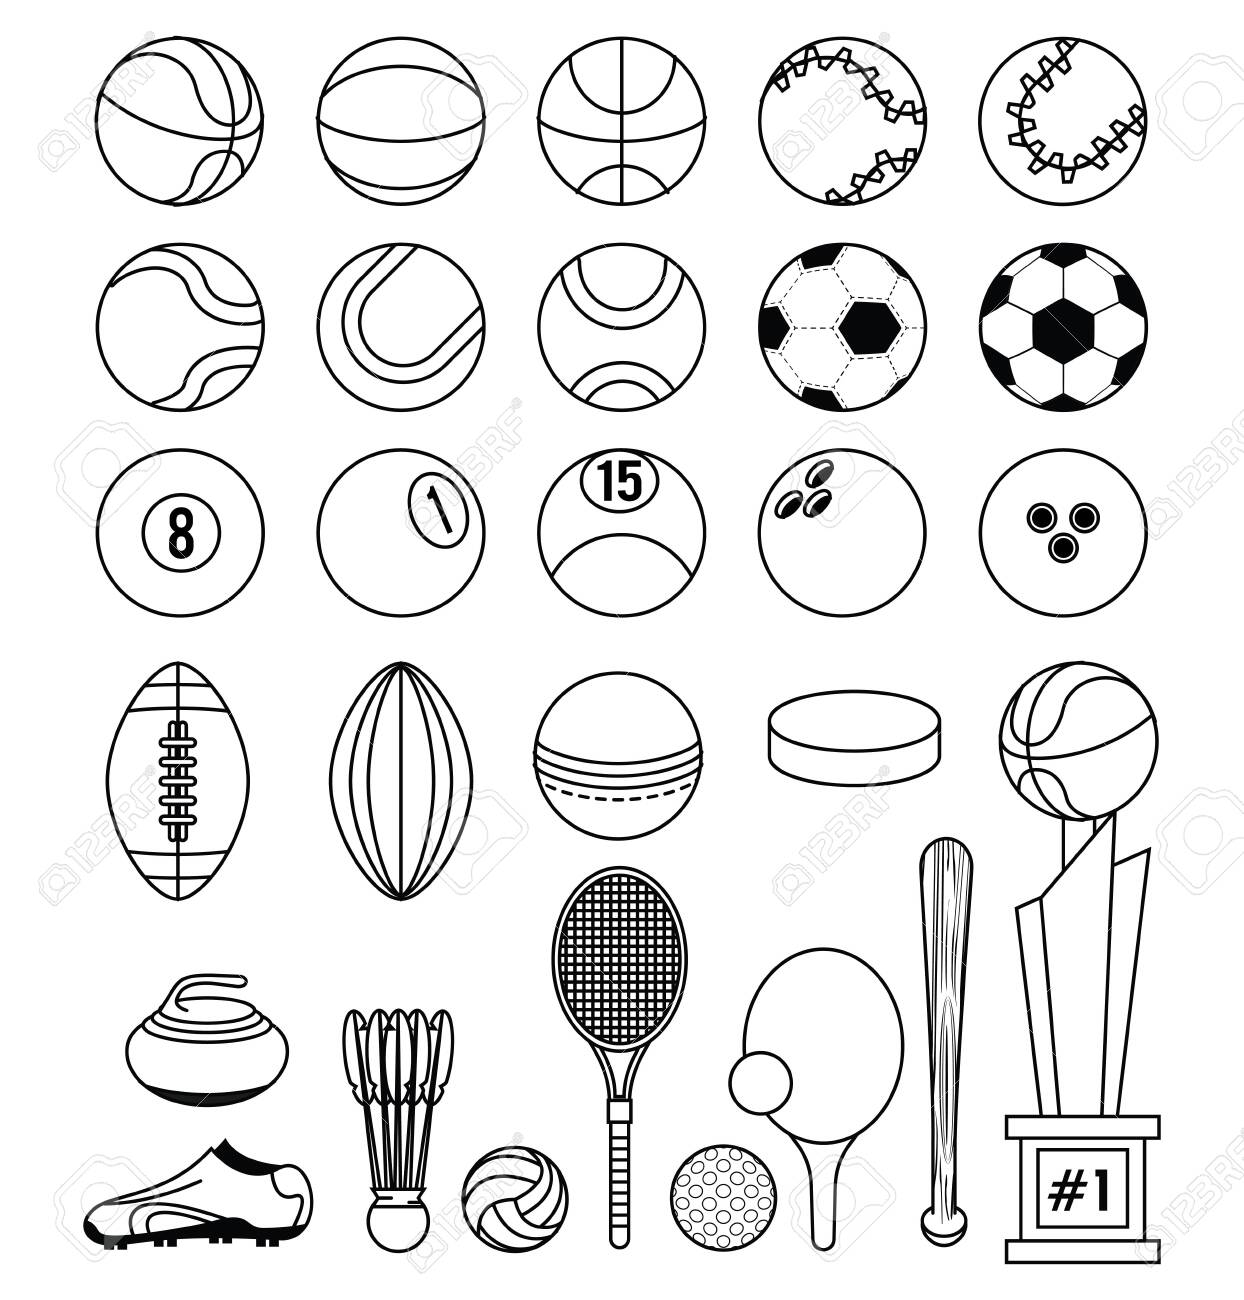 Sports balls soccer football tennis basketball tennis ping pong racket curling stone trophy fitness physical activity equipment collection black and white vector illustration graphic design - 122742026